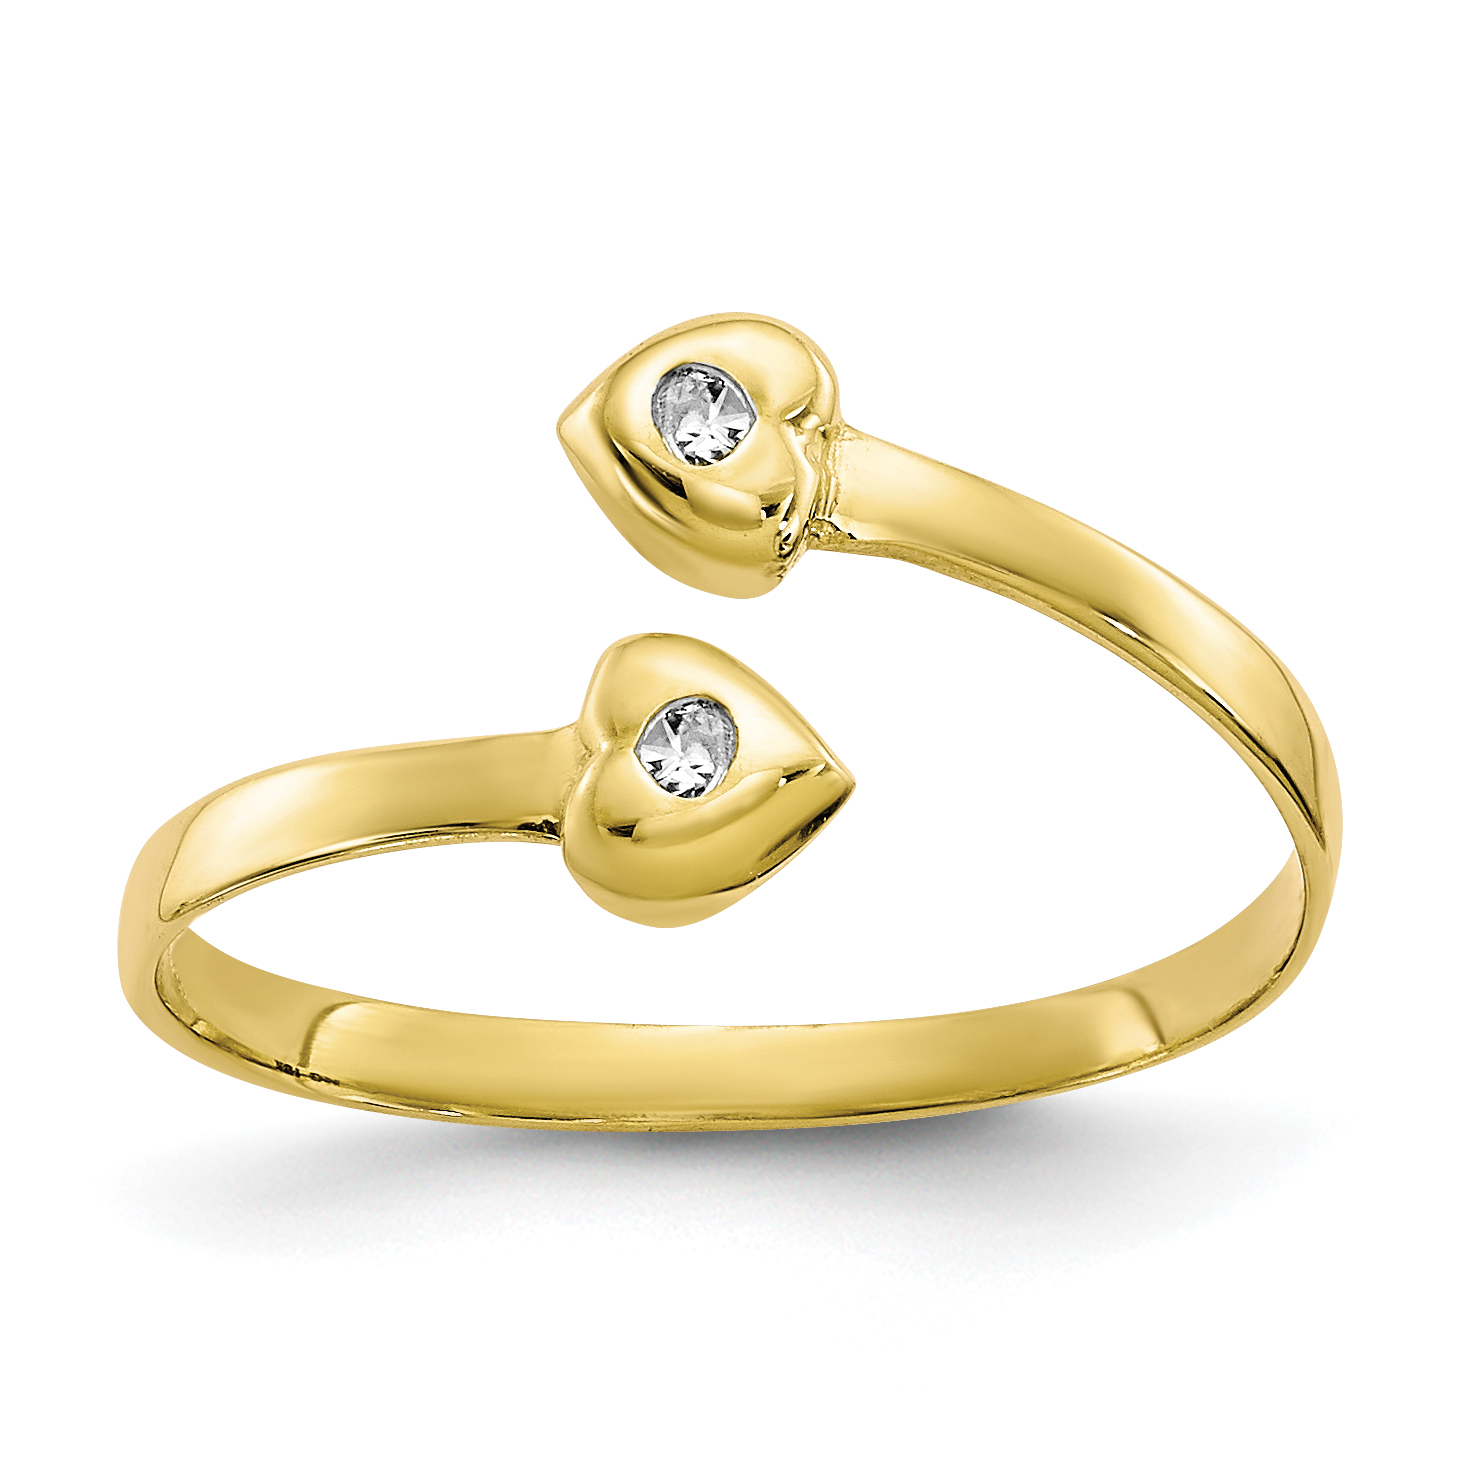 10k Yellow Gold Cubic Zirconia Cz Adjustable Cute Toe Ring Set Fine Jewelry Gifts For Women For Her - image 5 of 5